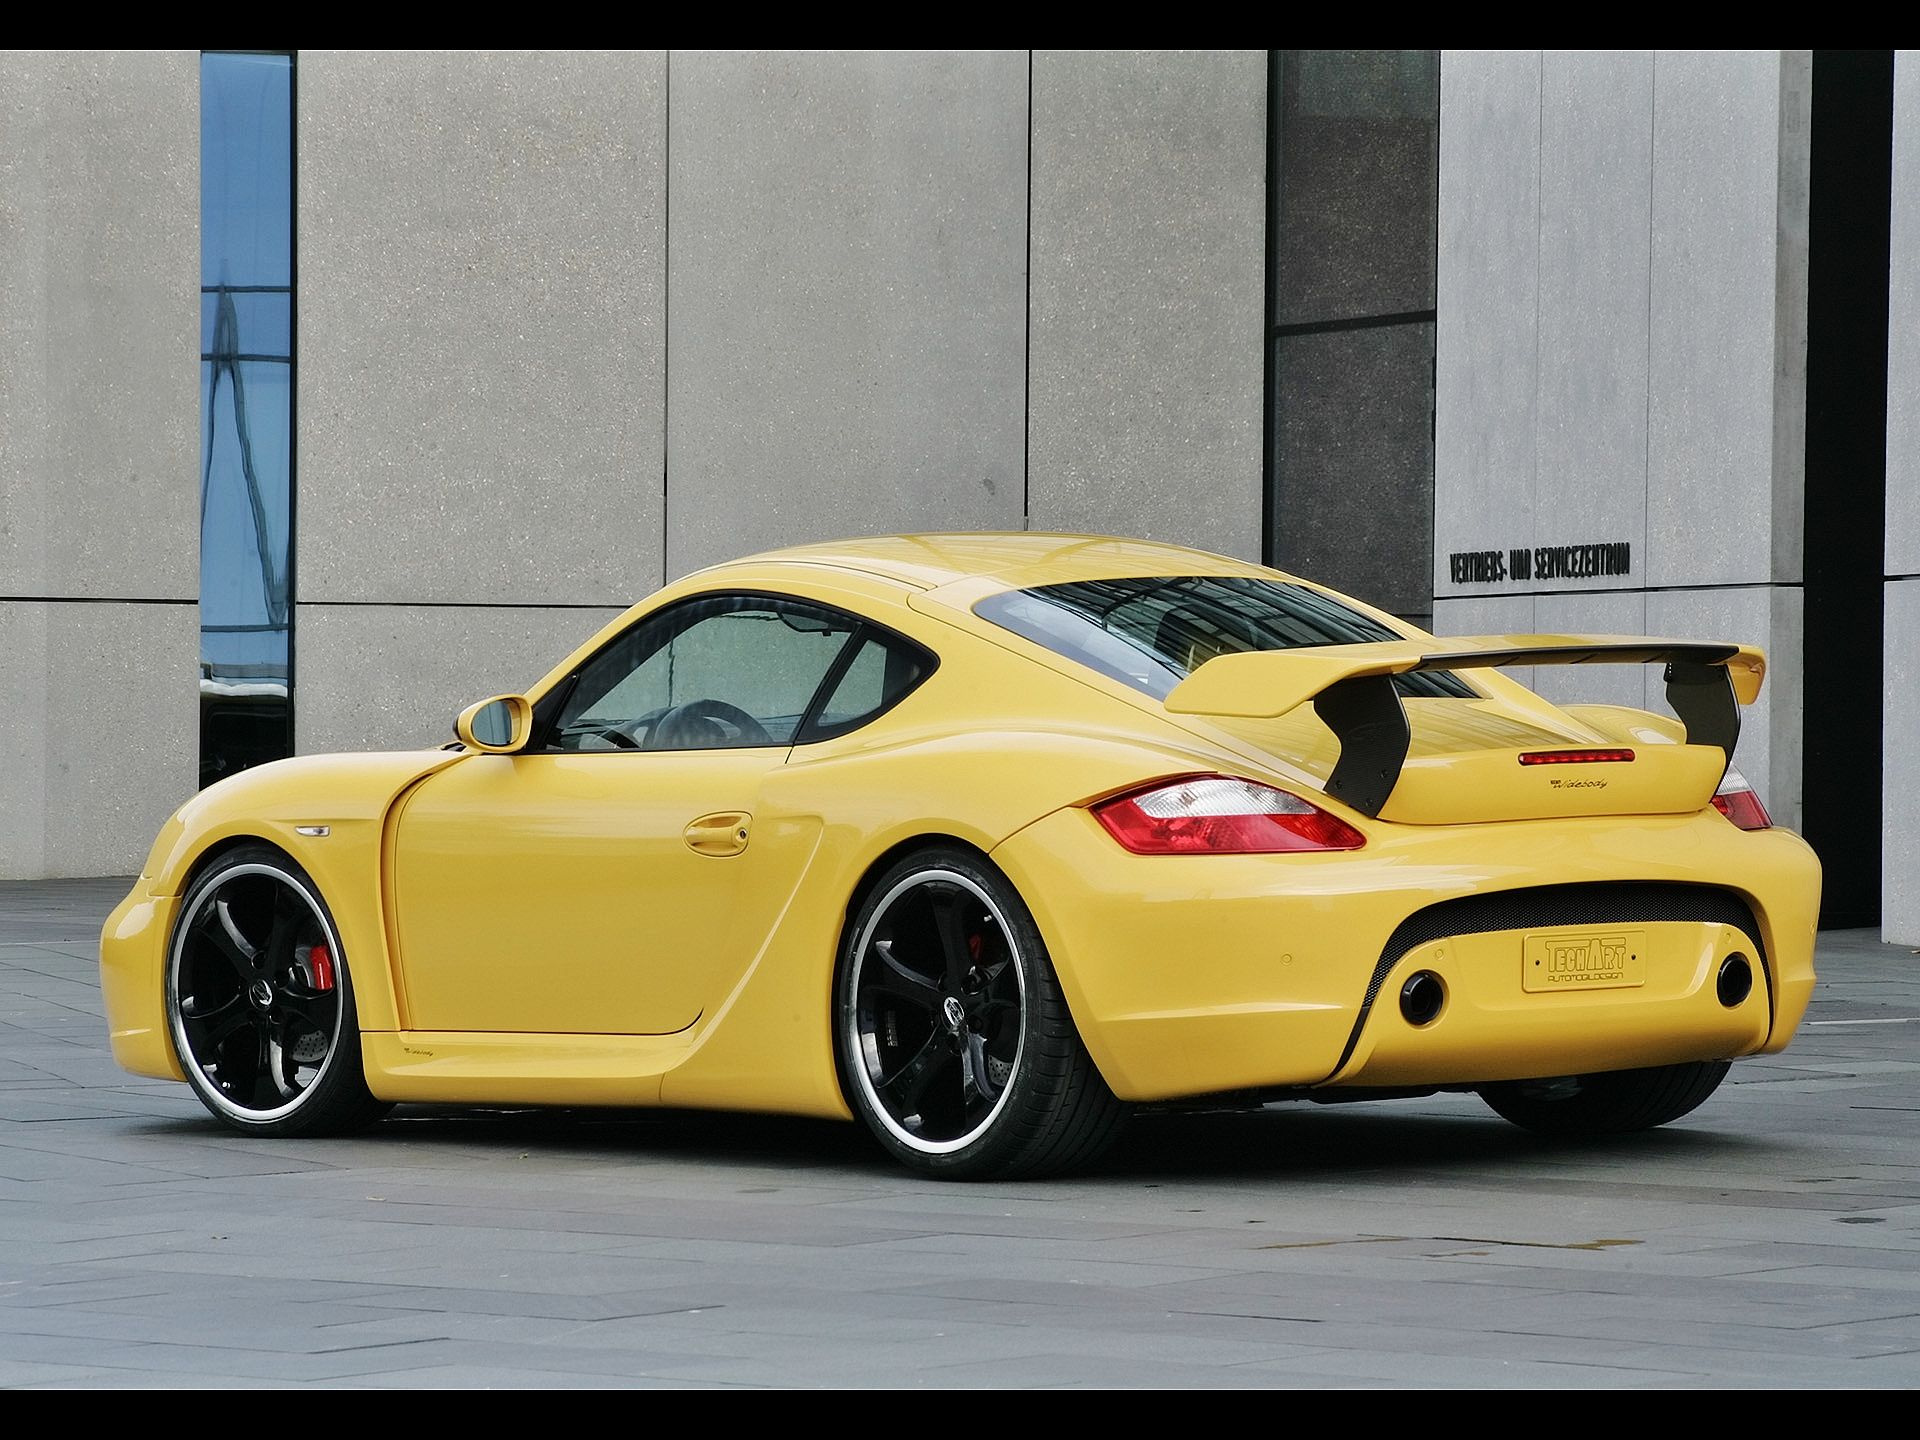 Pin By Hovie Nestor On Yellow On Cars And Motorcycles Porsche Cayman S Cayman S Porsche